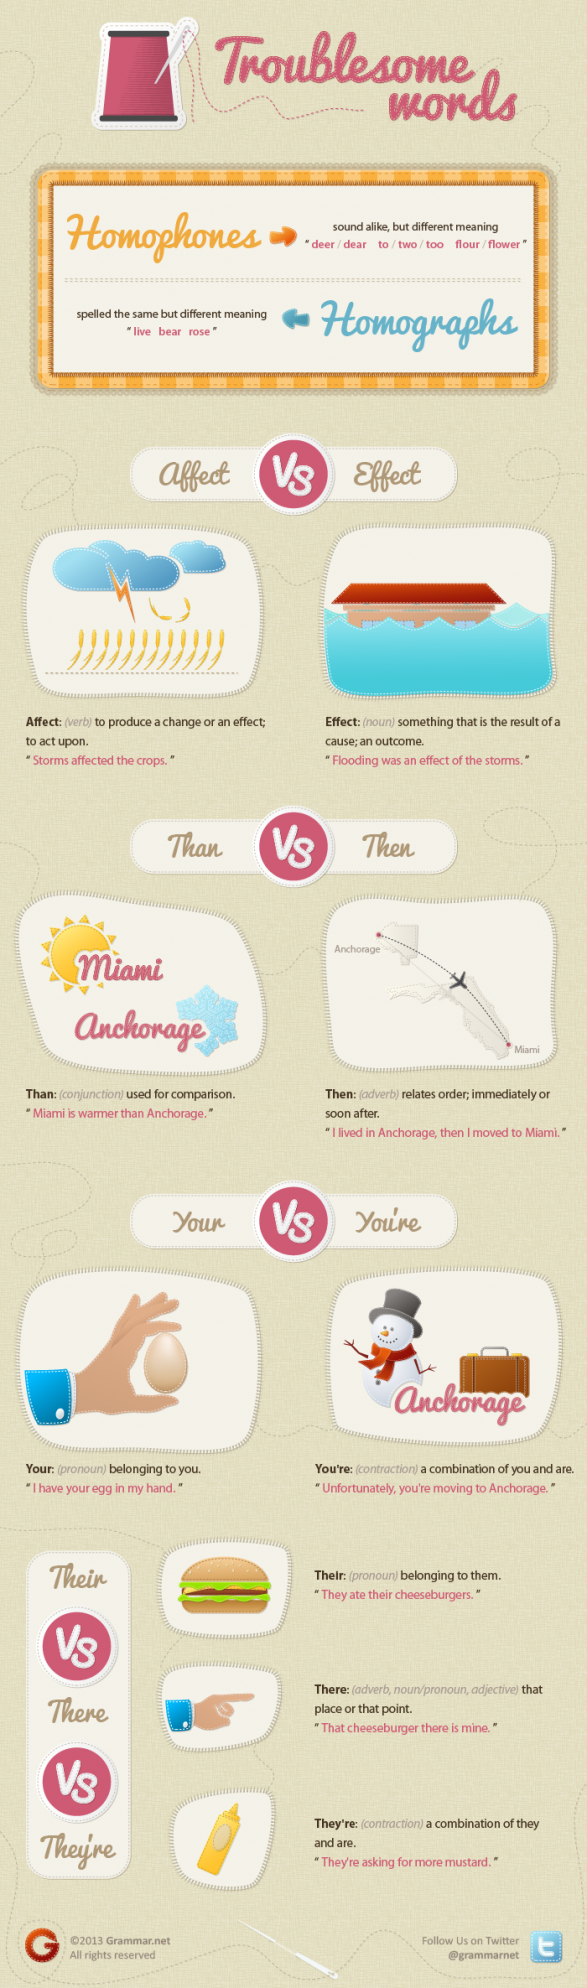 Common English Mistakes | Troublesome Words